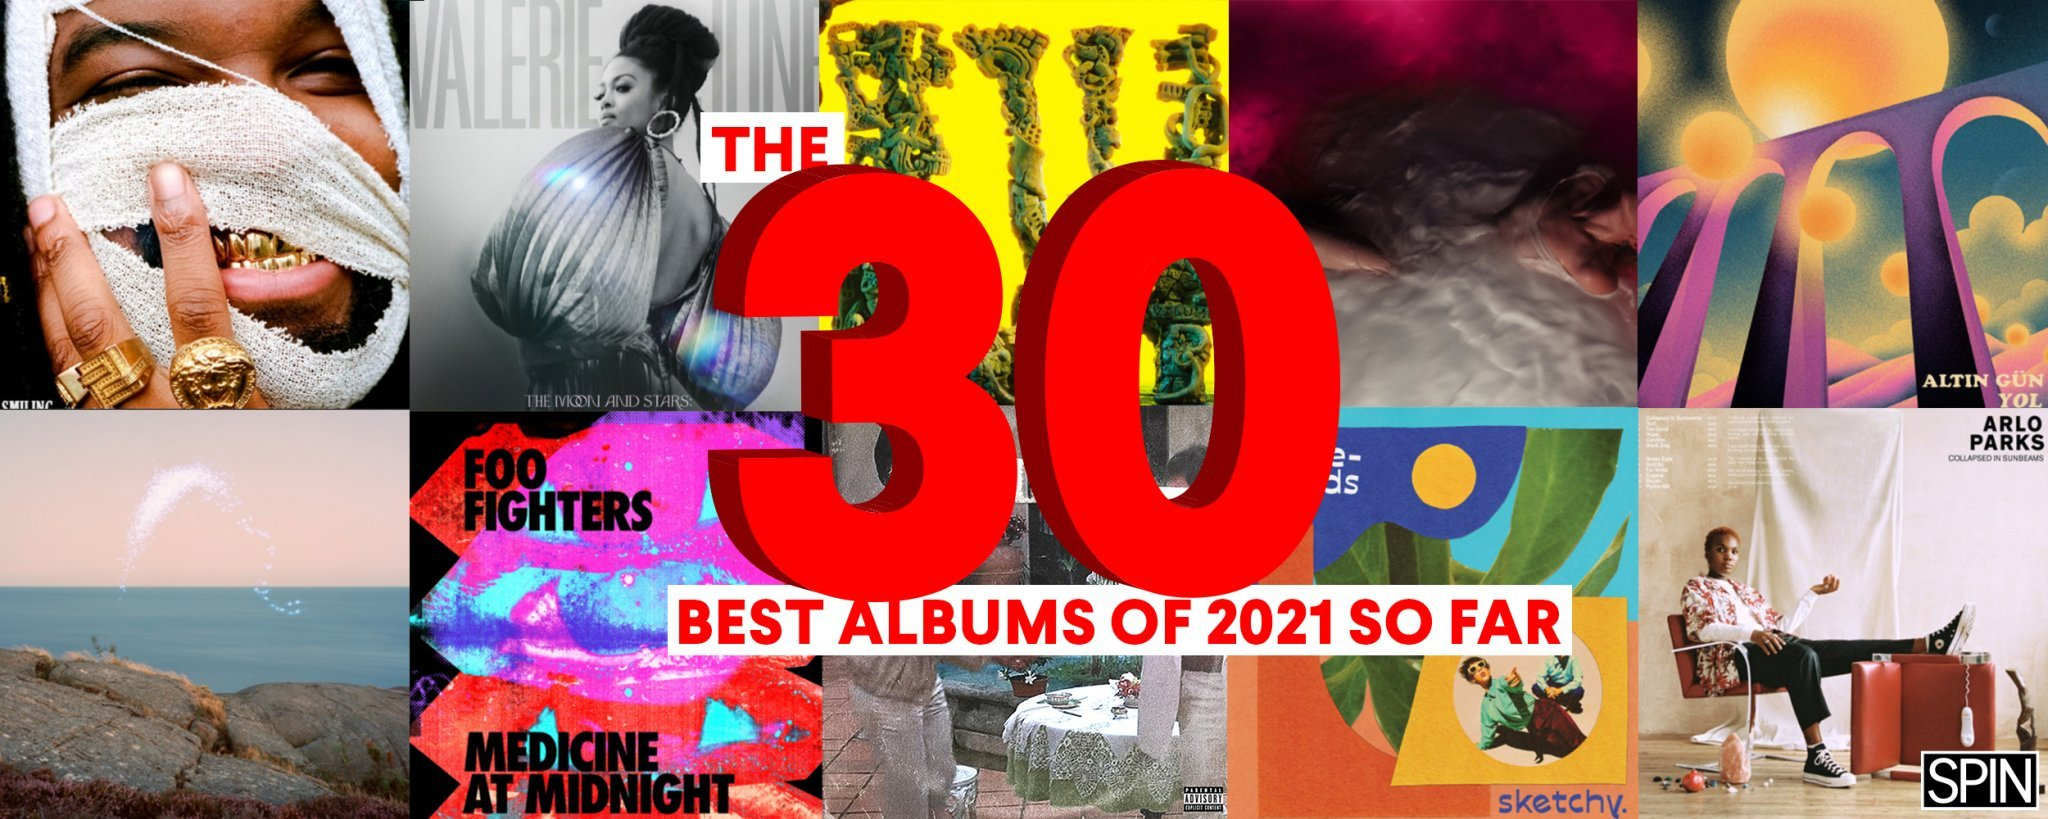 These are the best albums of the year